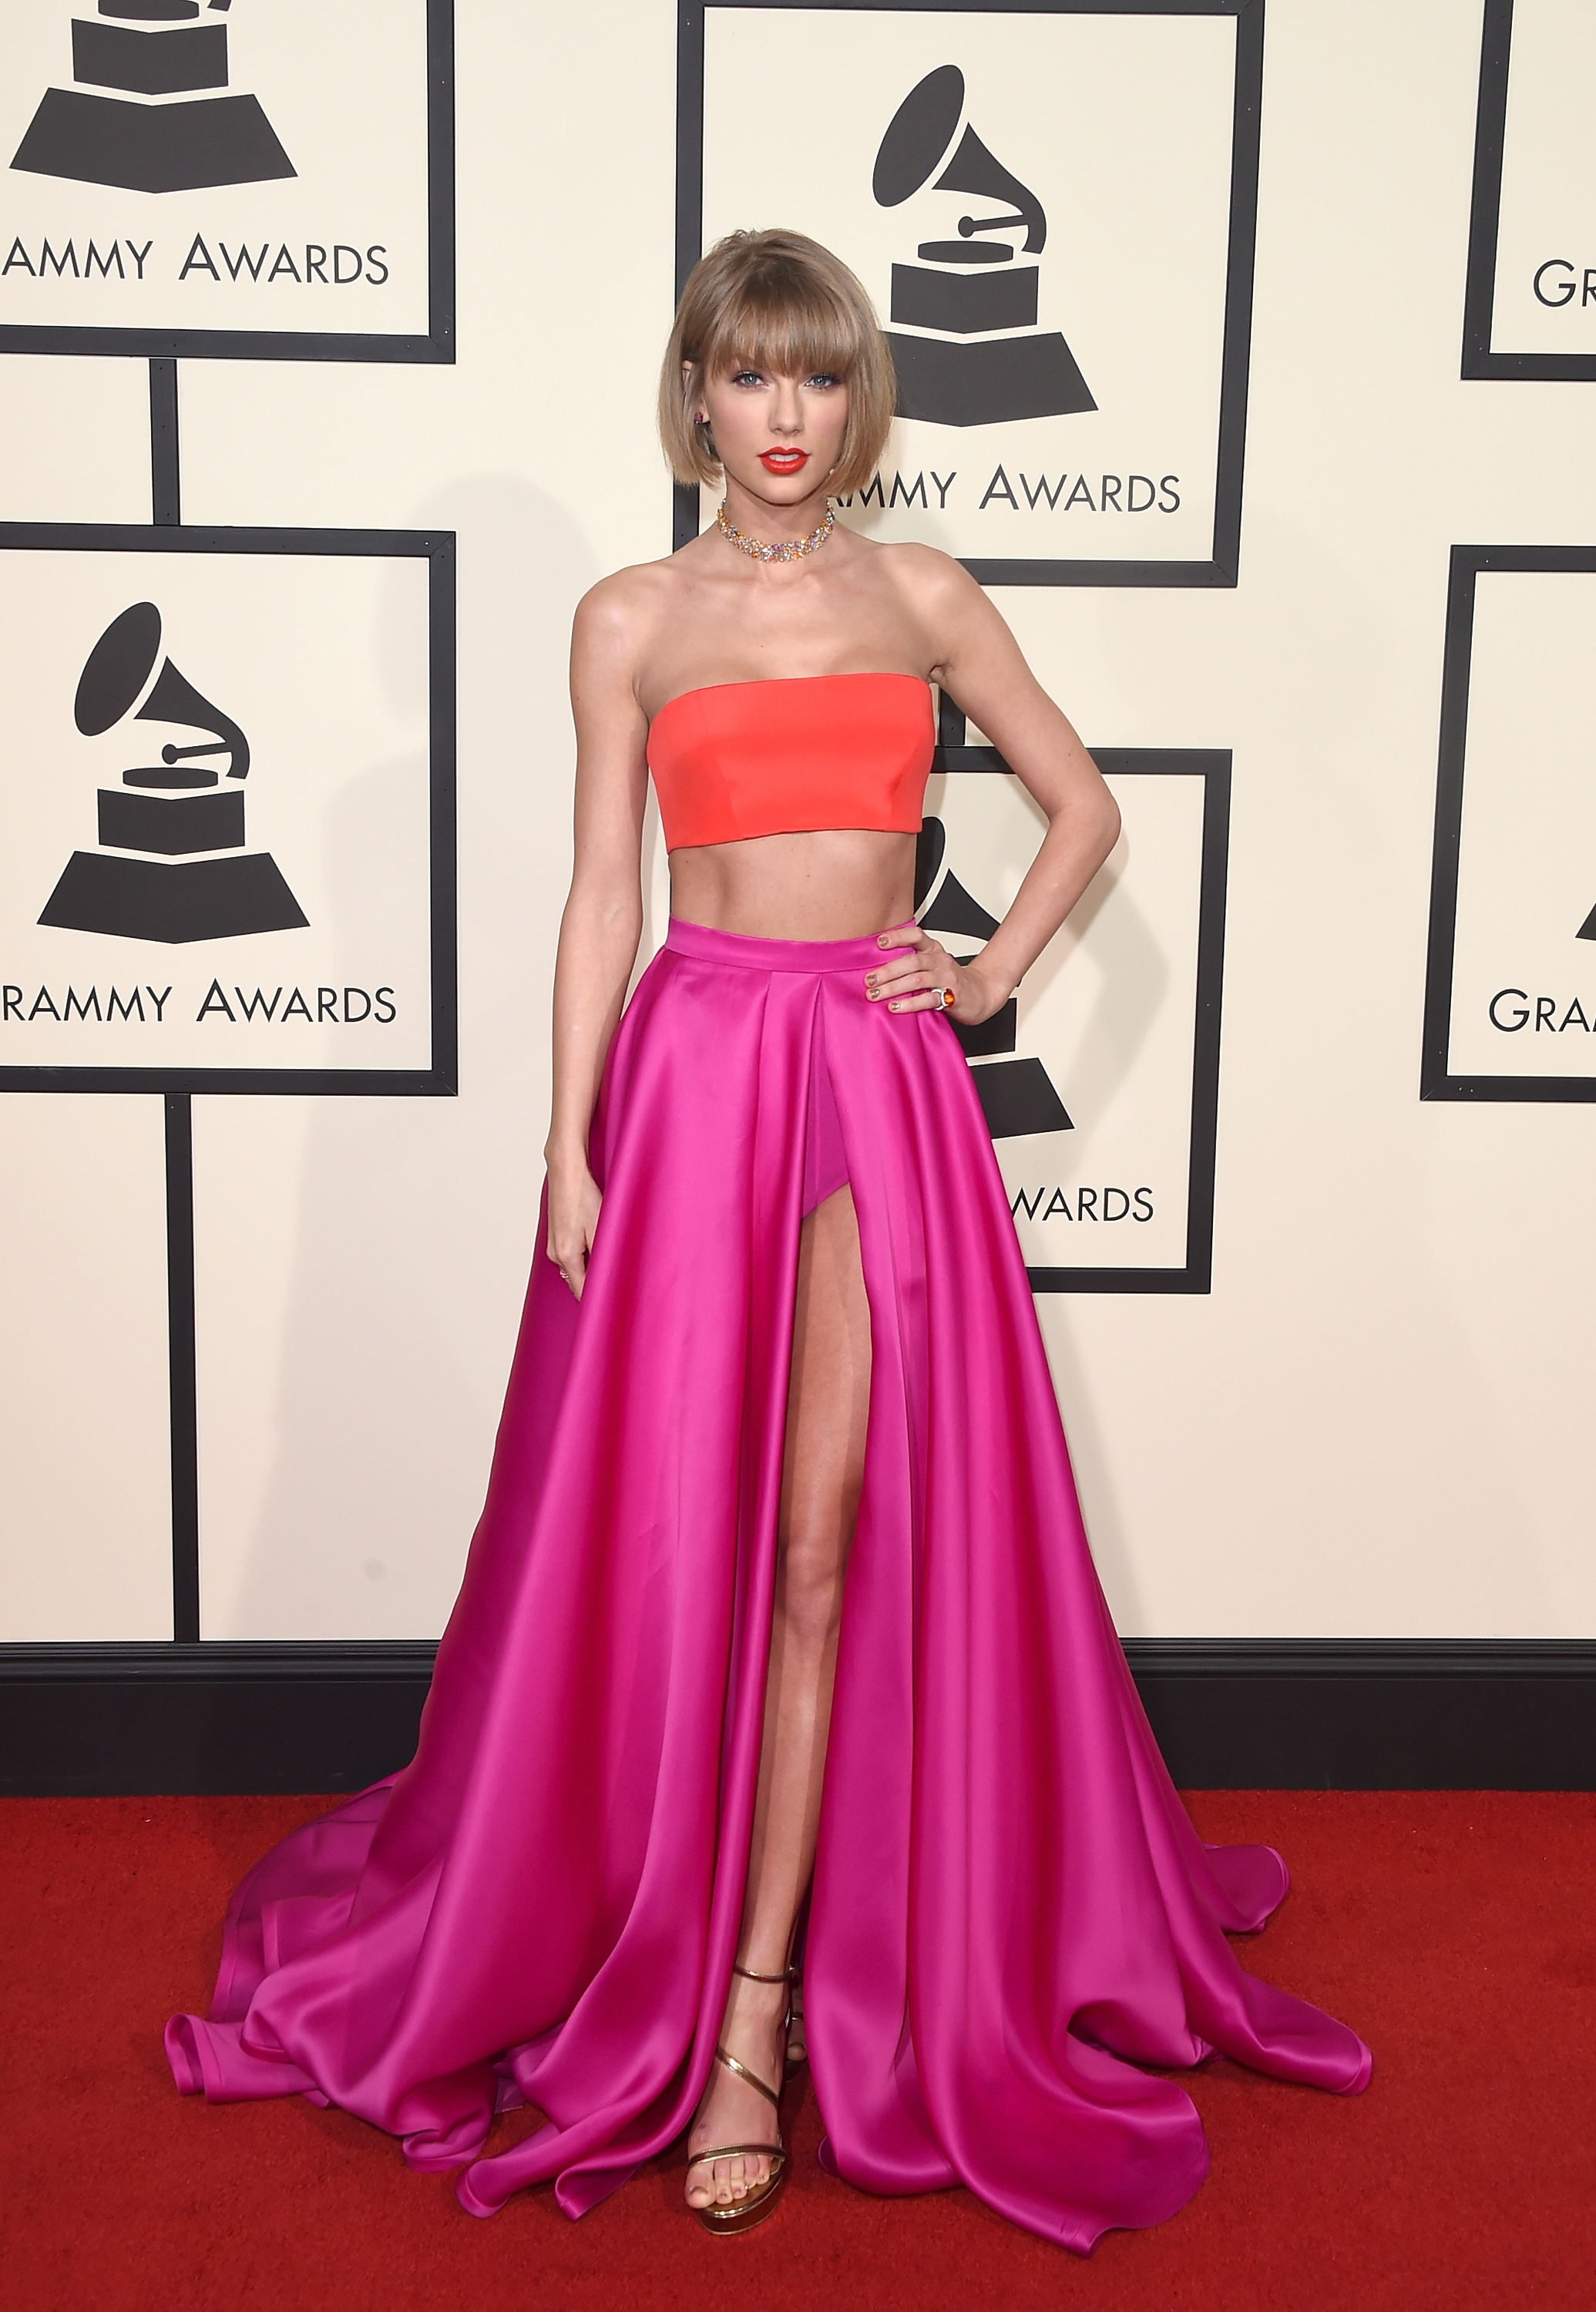 LOS ANGELES, CA - FEBRUARY 15: Musician Taylor Swift, fashion detail, attends The 58th GRAMMY Awards at Staples Center on February 15, 2016 in Los Angeles, California. (Photo by Jason Merritt/Getty Images for NARAS)